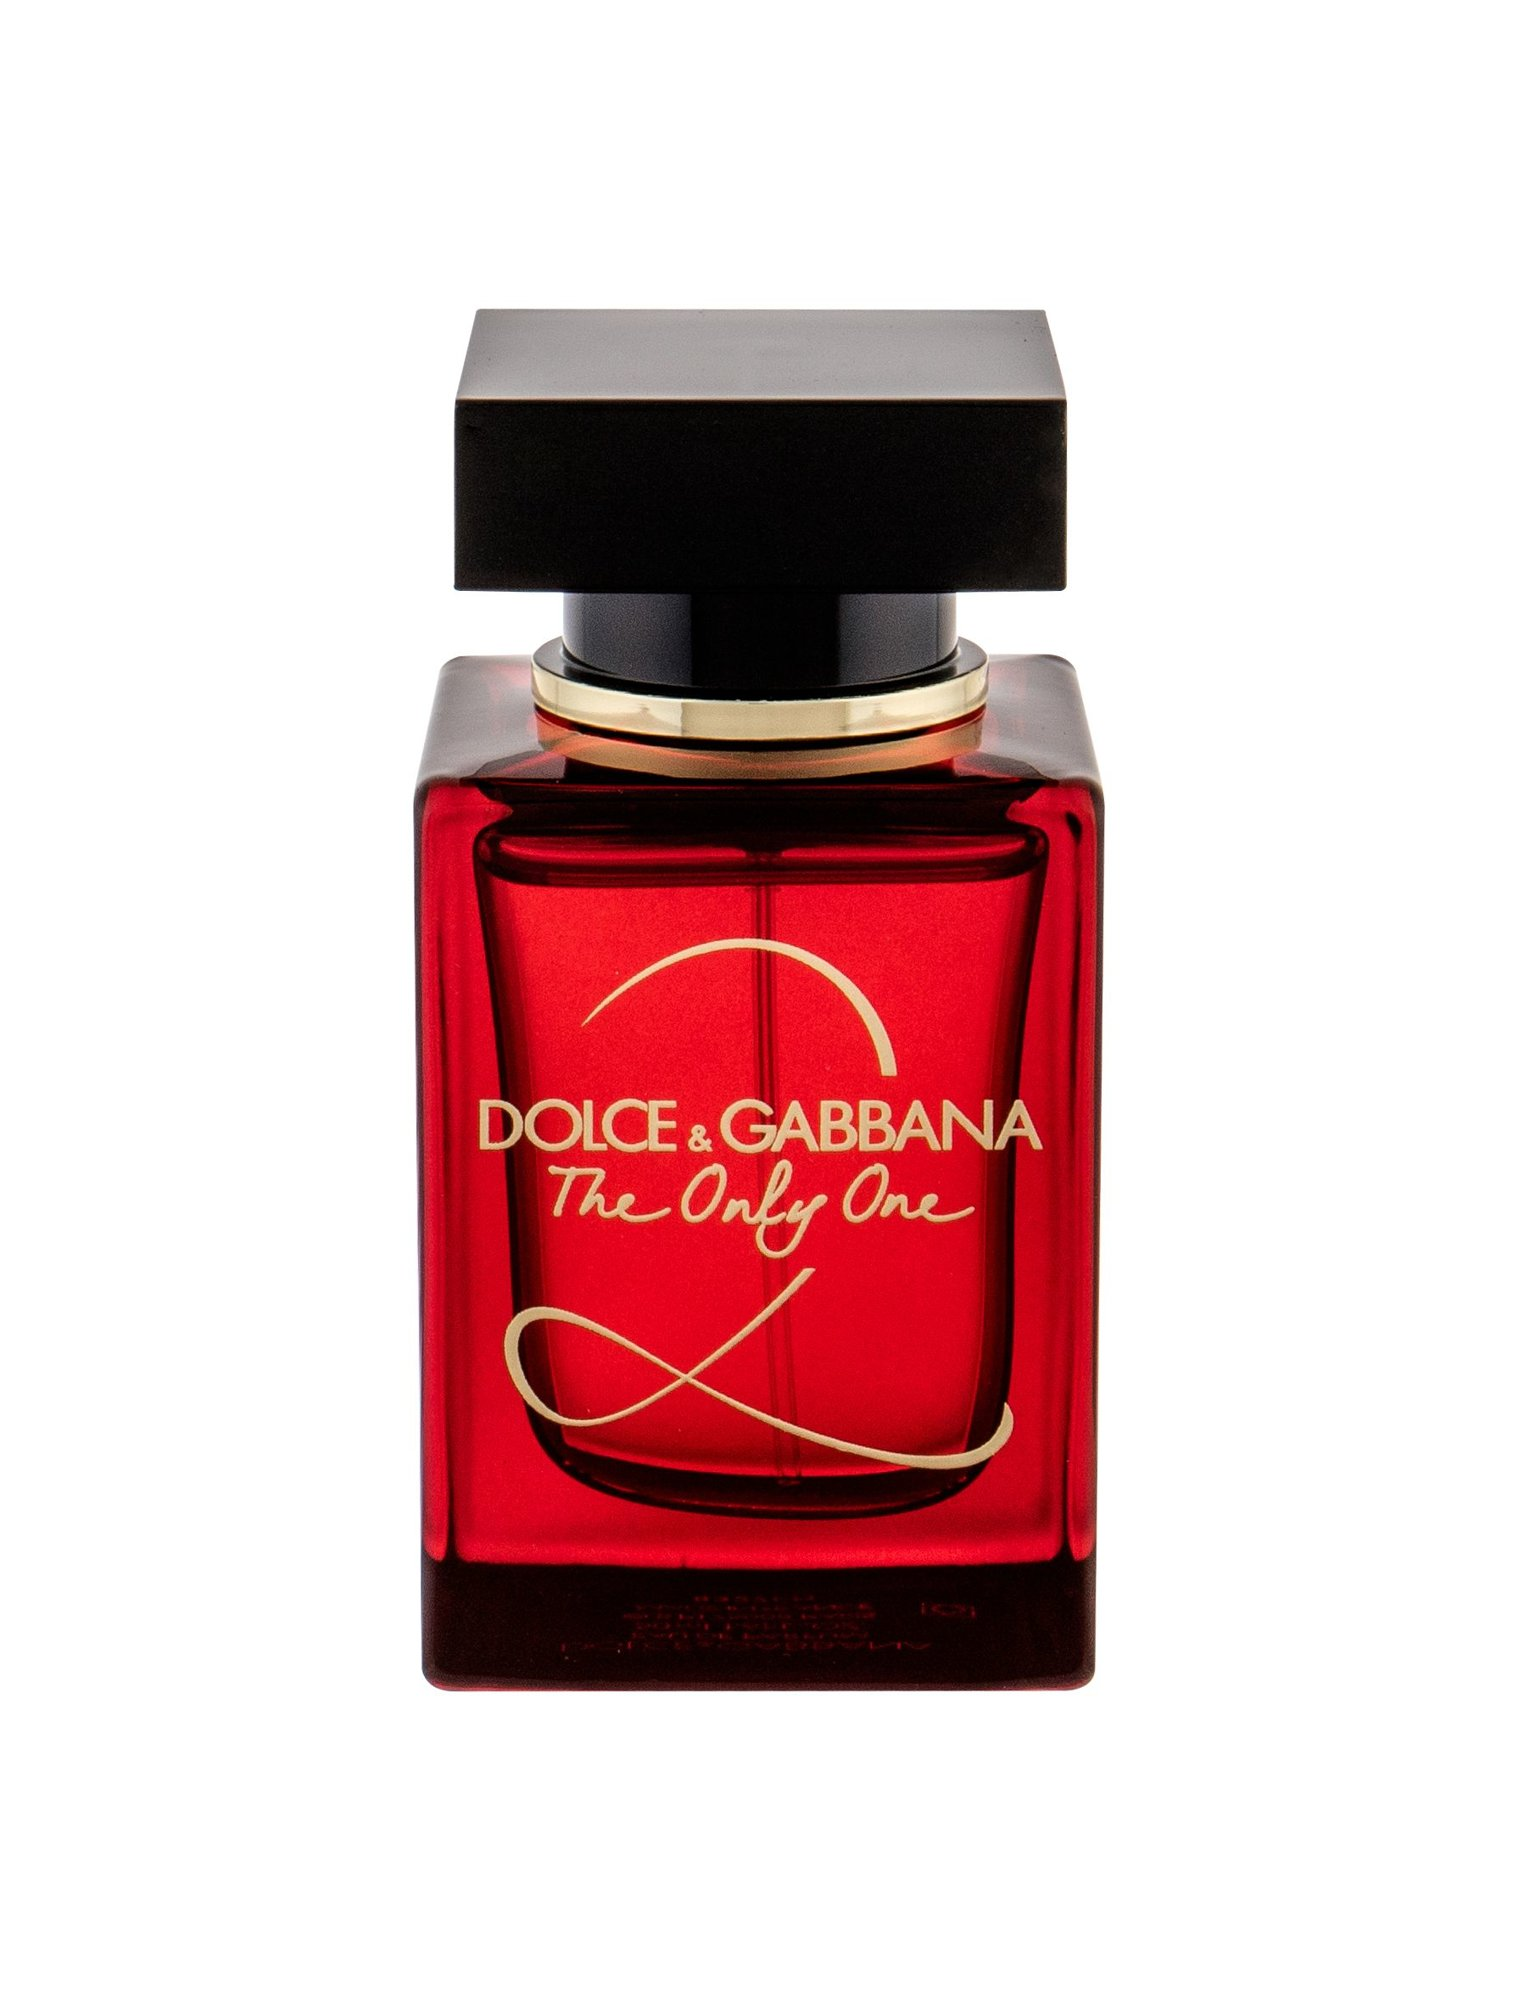 Dolce&Gabbana The Only One 2, Parfumovaná voda 100ml